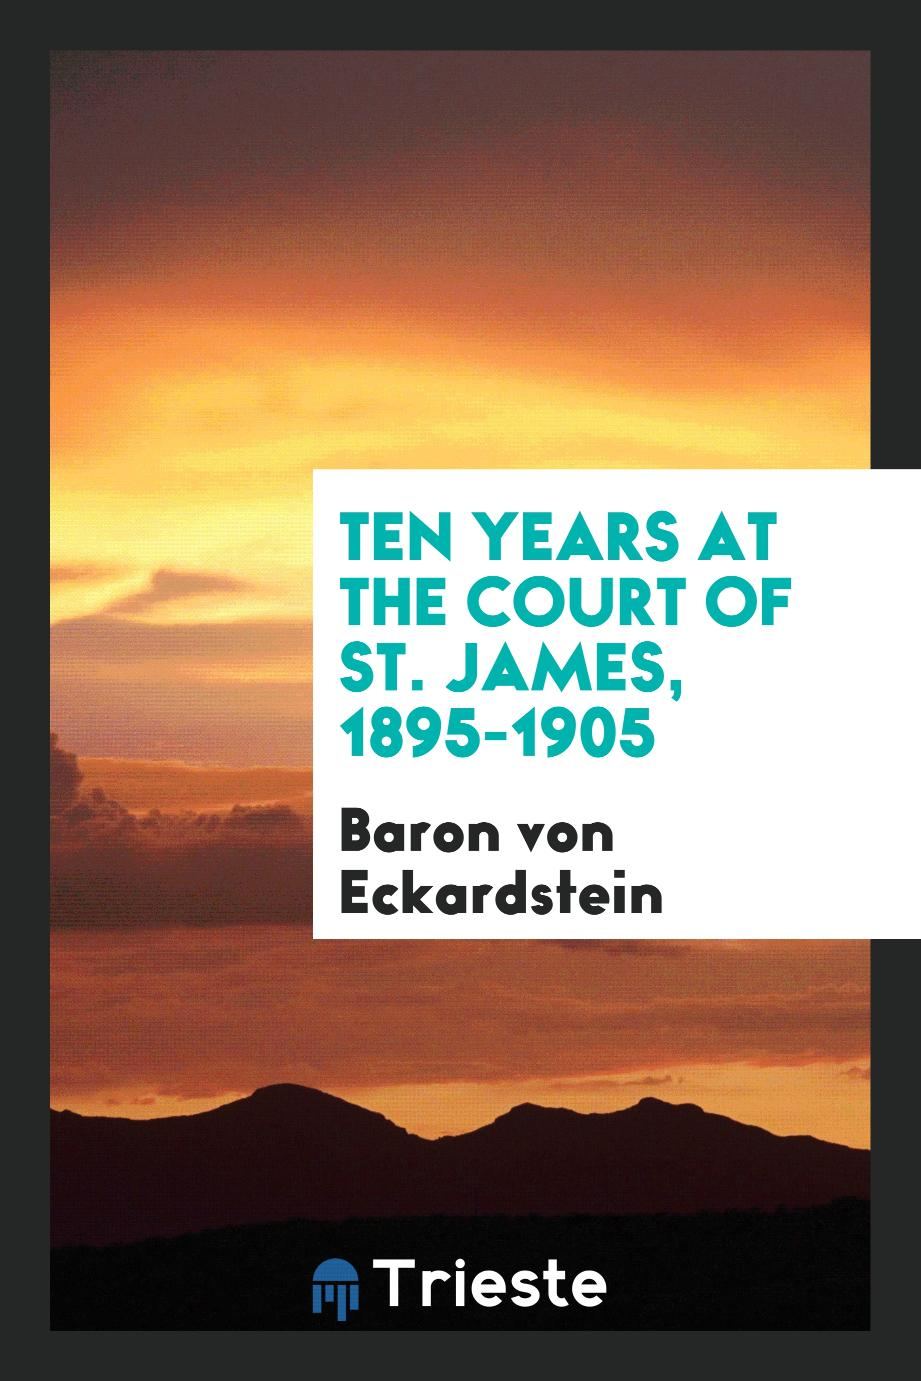 Ten years at the Court of St. James, 1895-1905